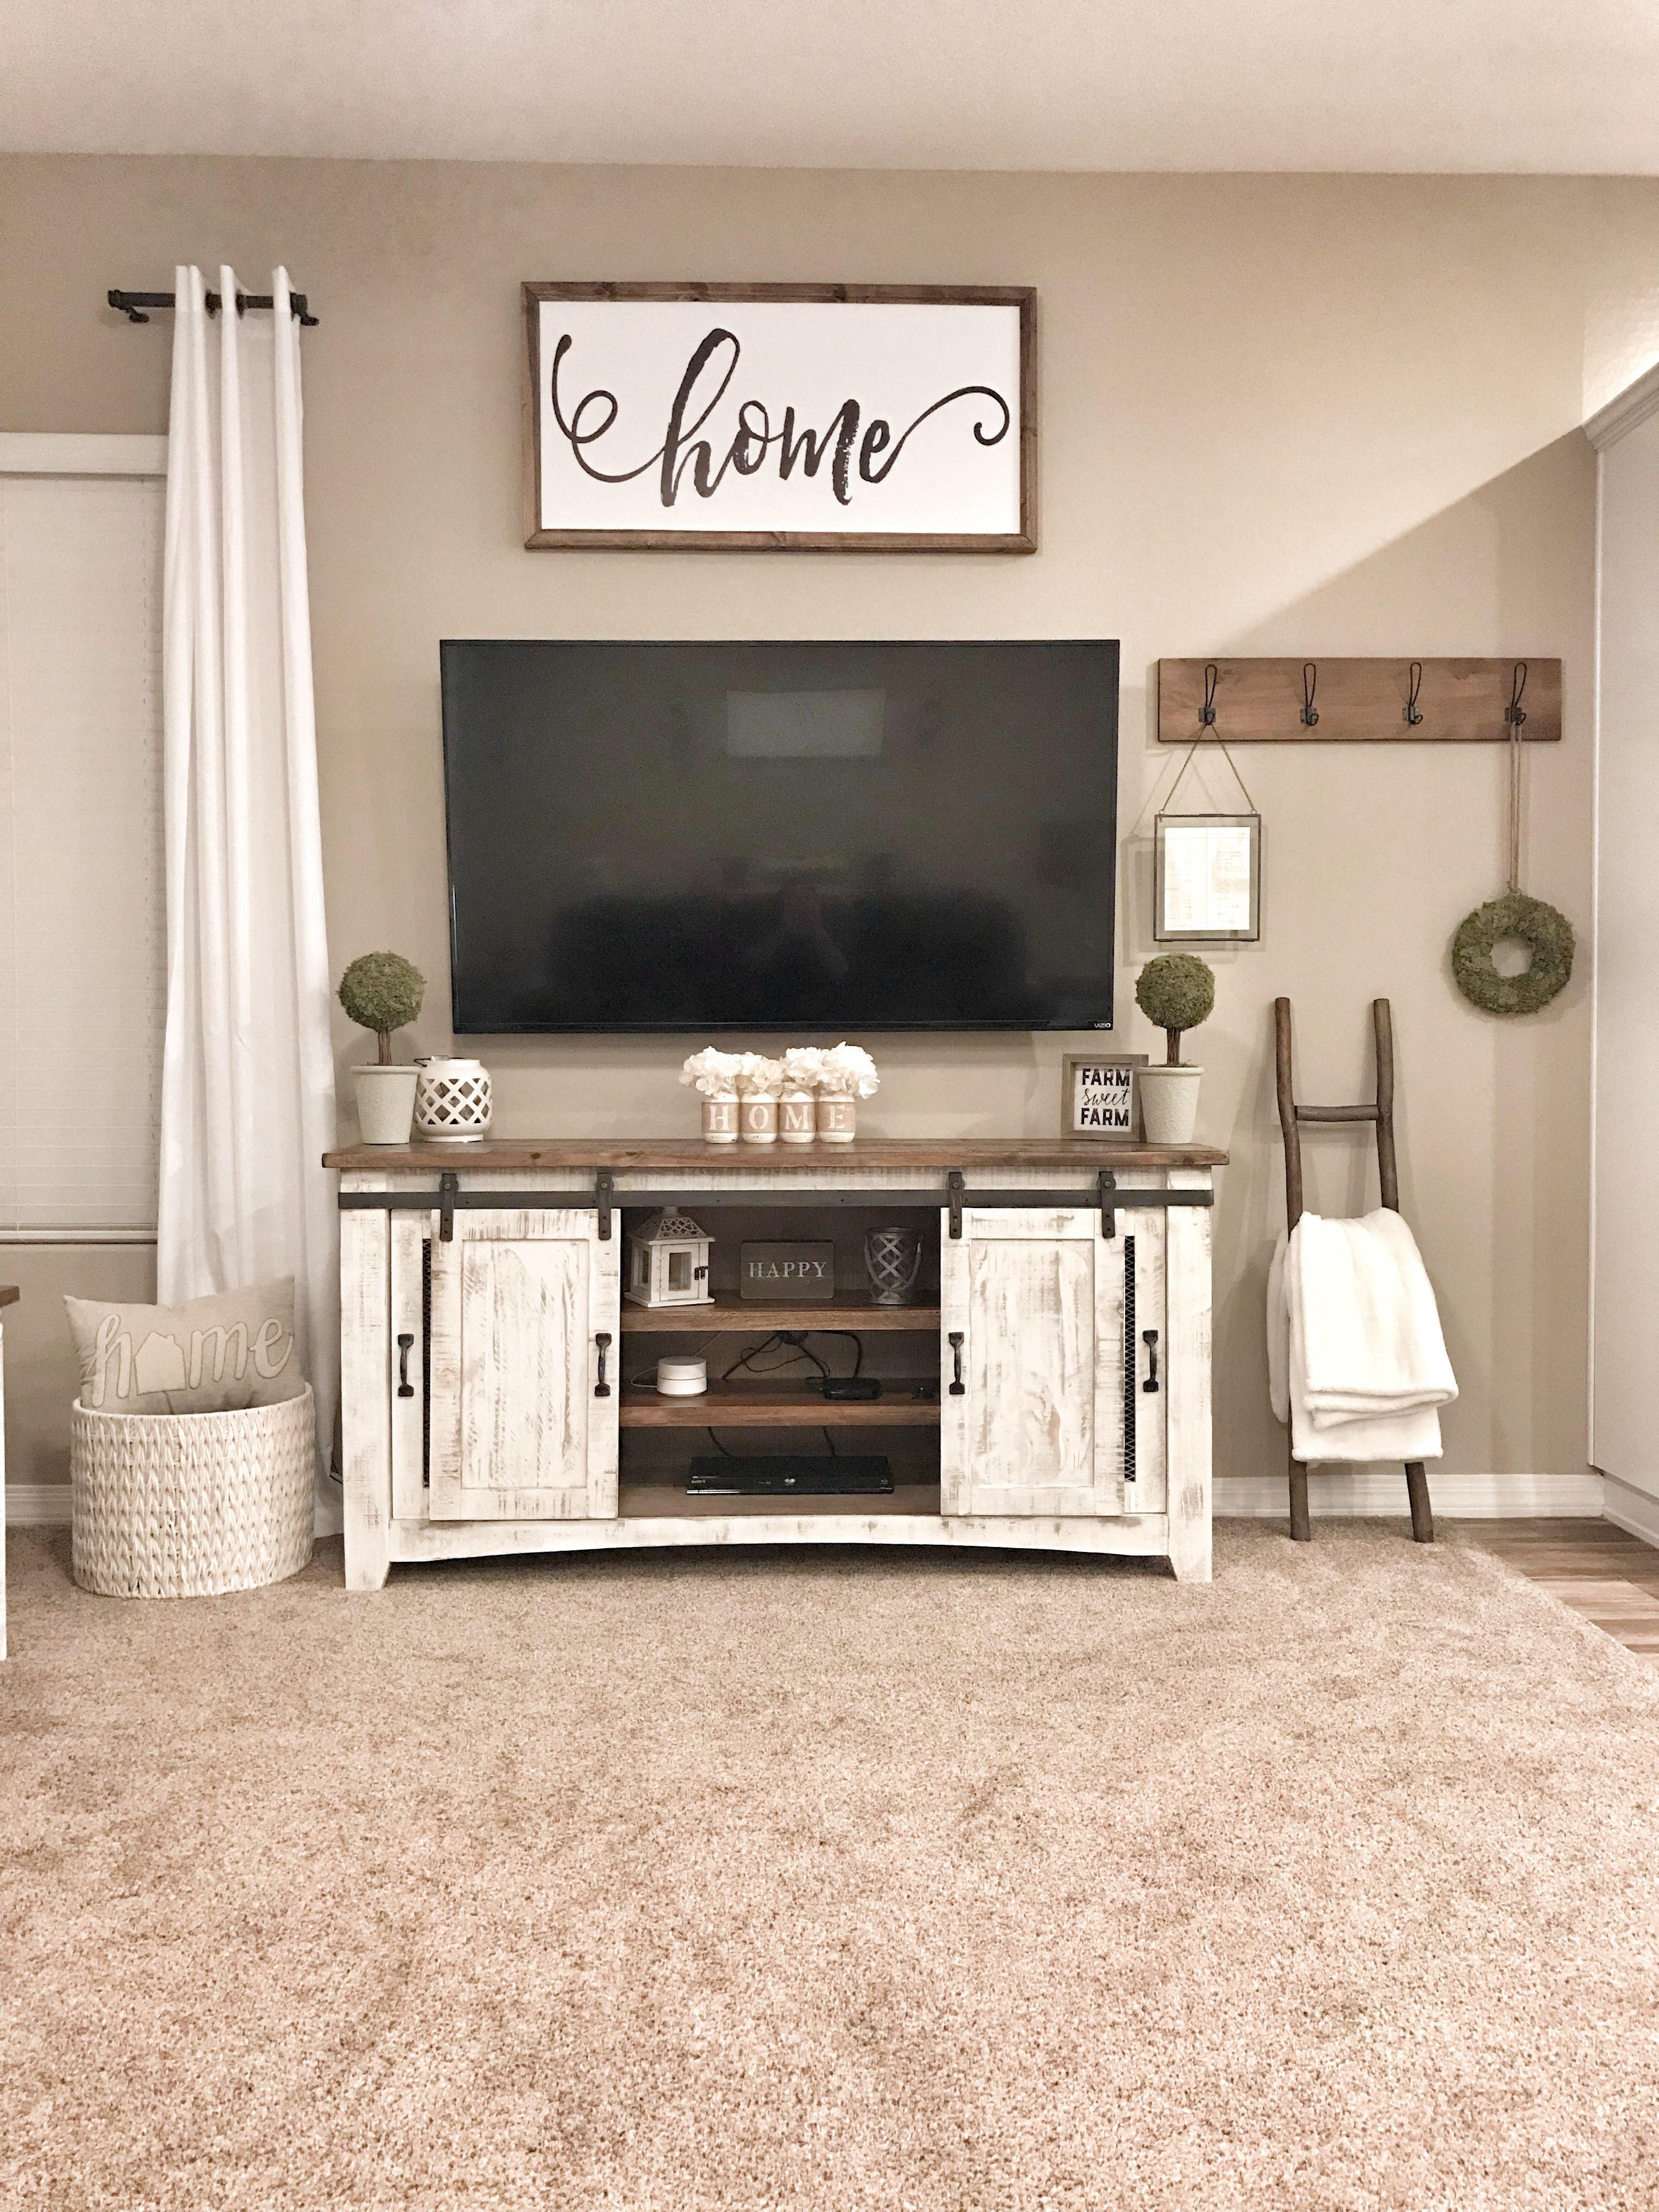 Farmhouse Tv Stand Decor Home Remodeling Home Living Room Home